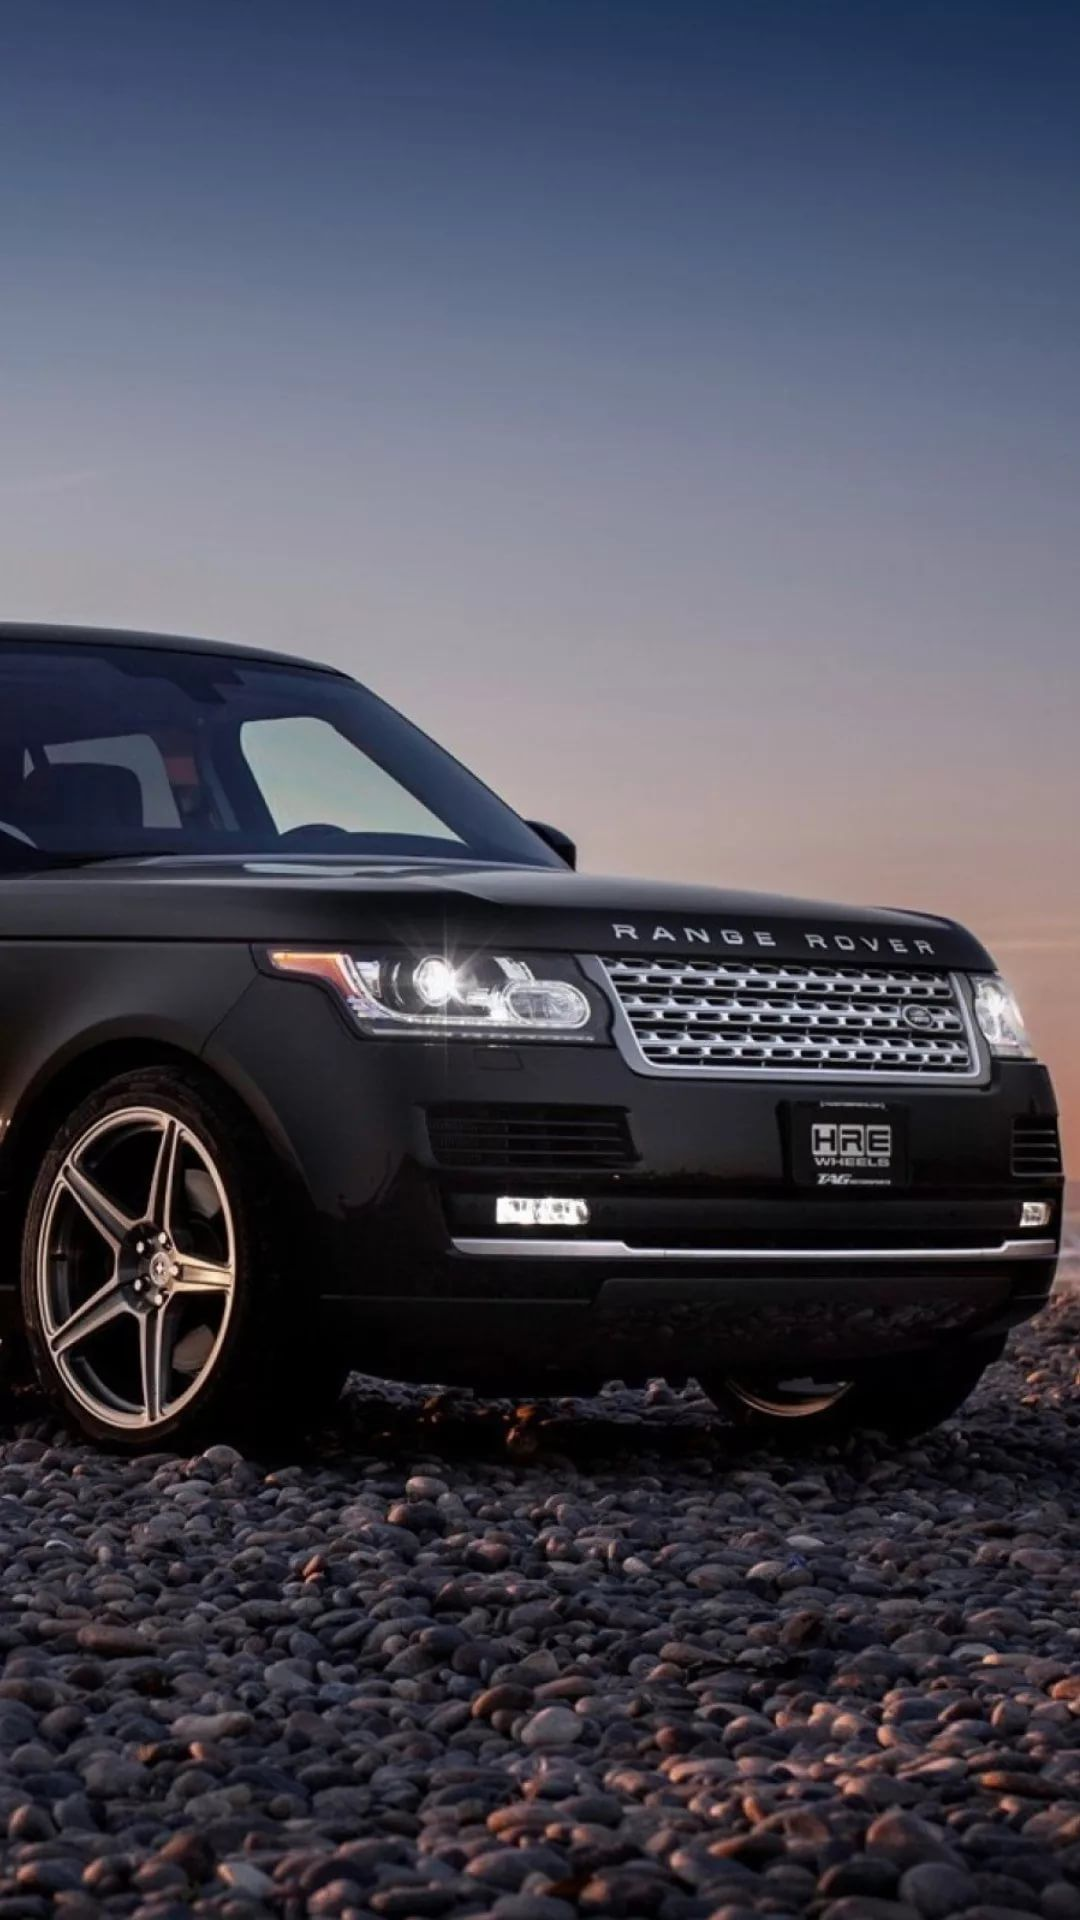 Range Rover iOS 9 wallpaper